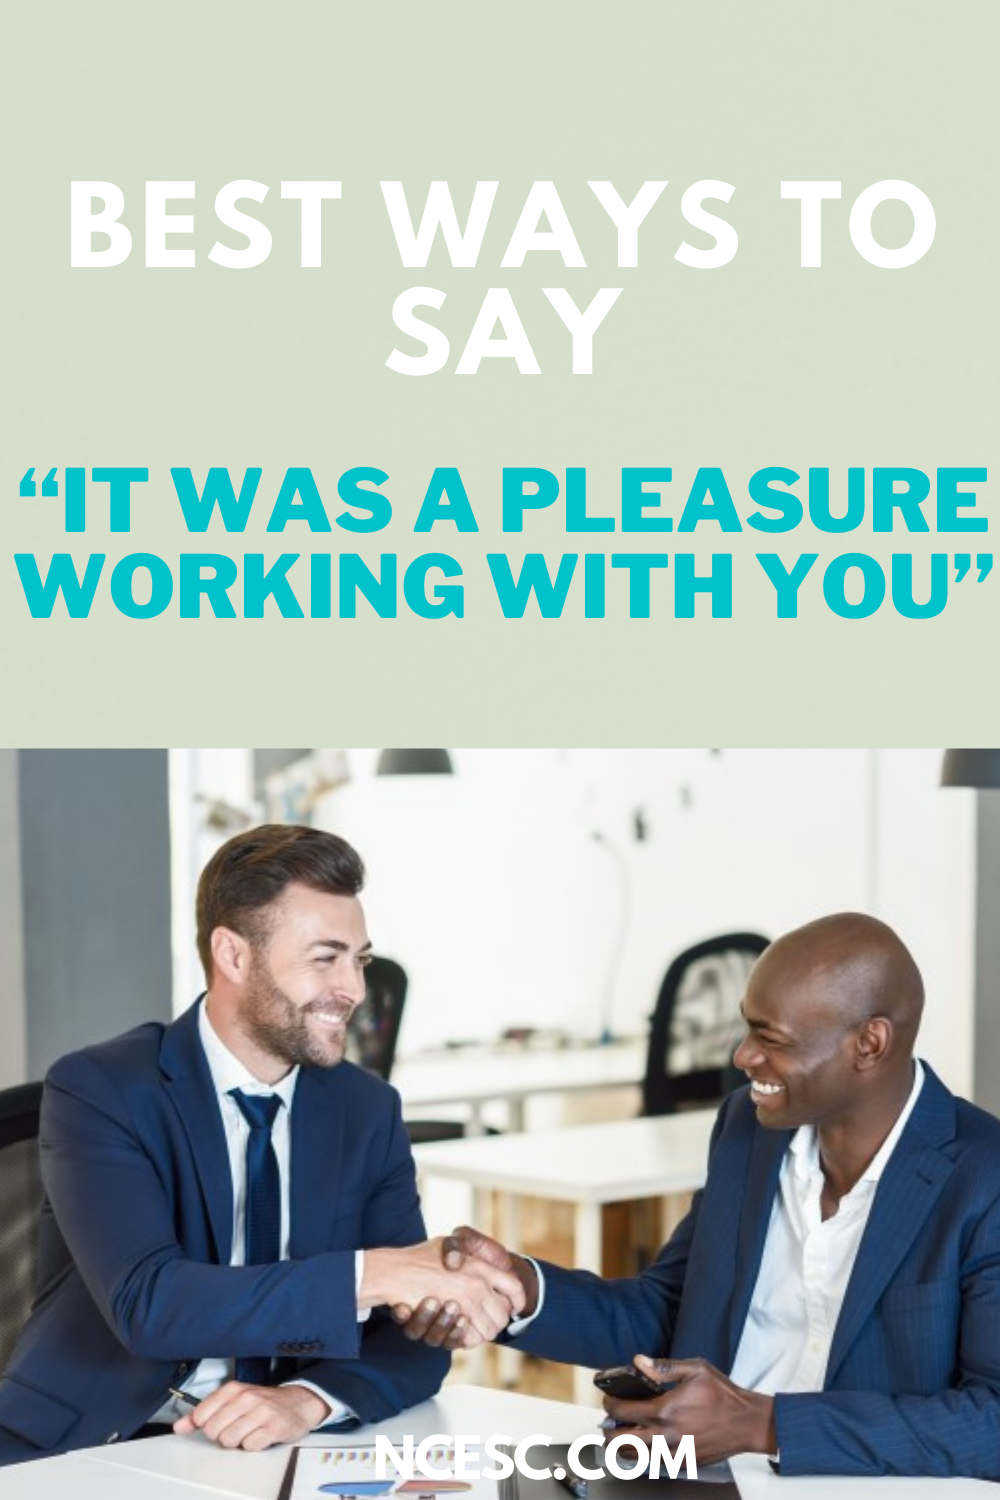 best ways to say it was a pleasure working with you